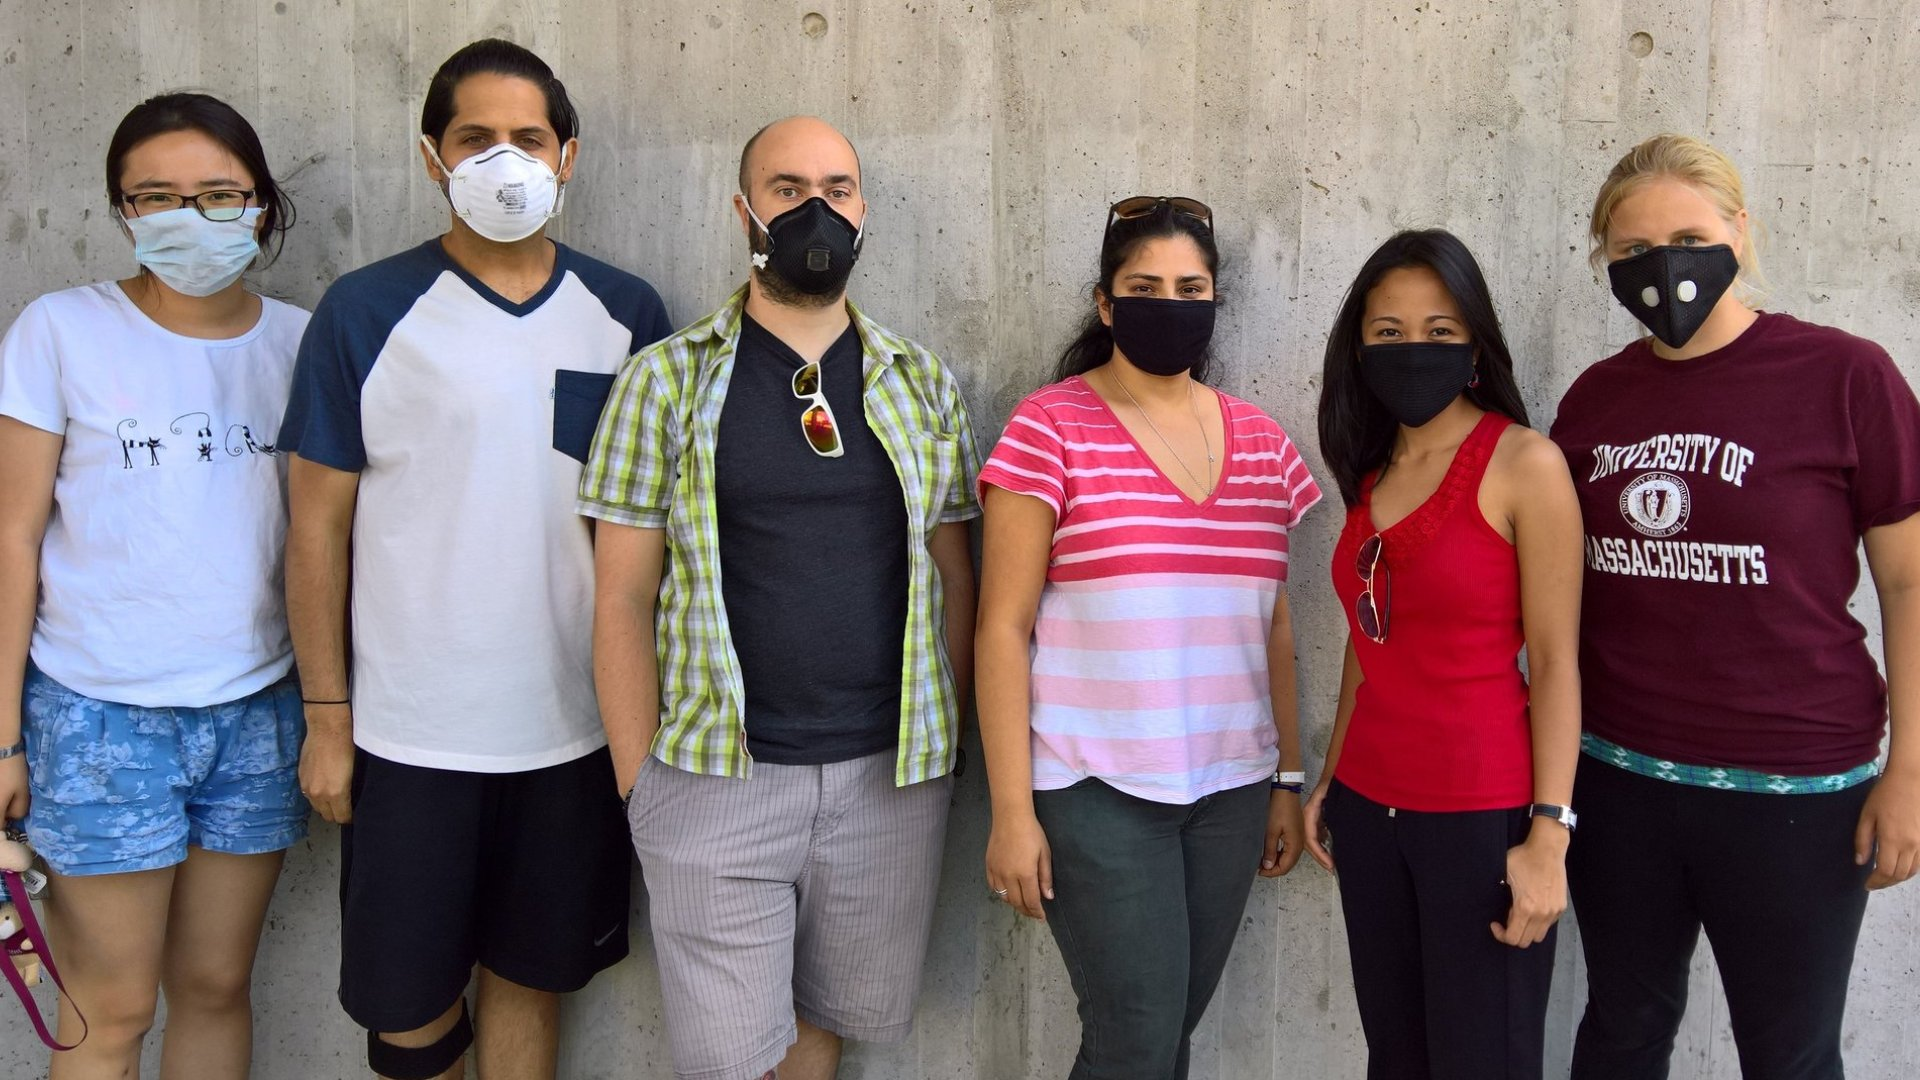 CDC Says Do Not Wear Masks With Vents Or Valves